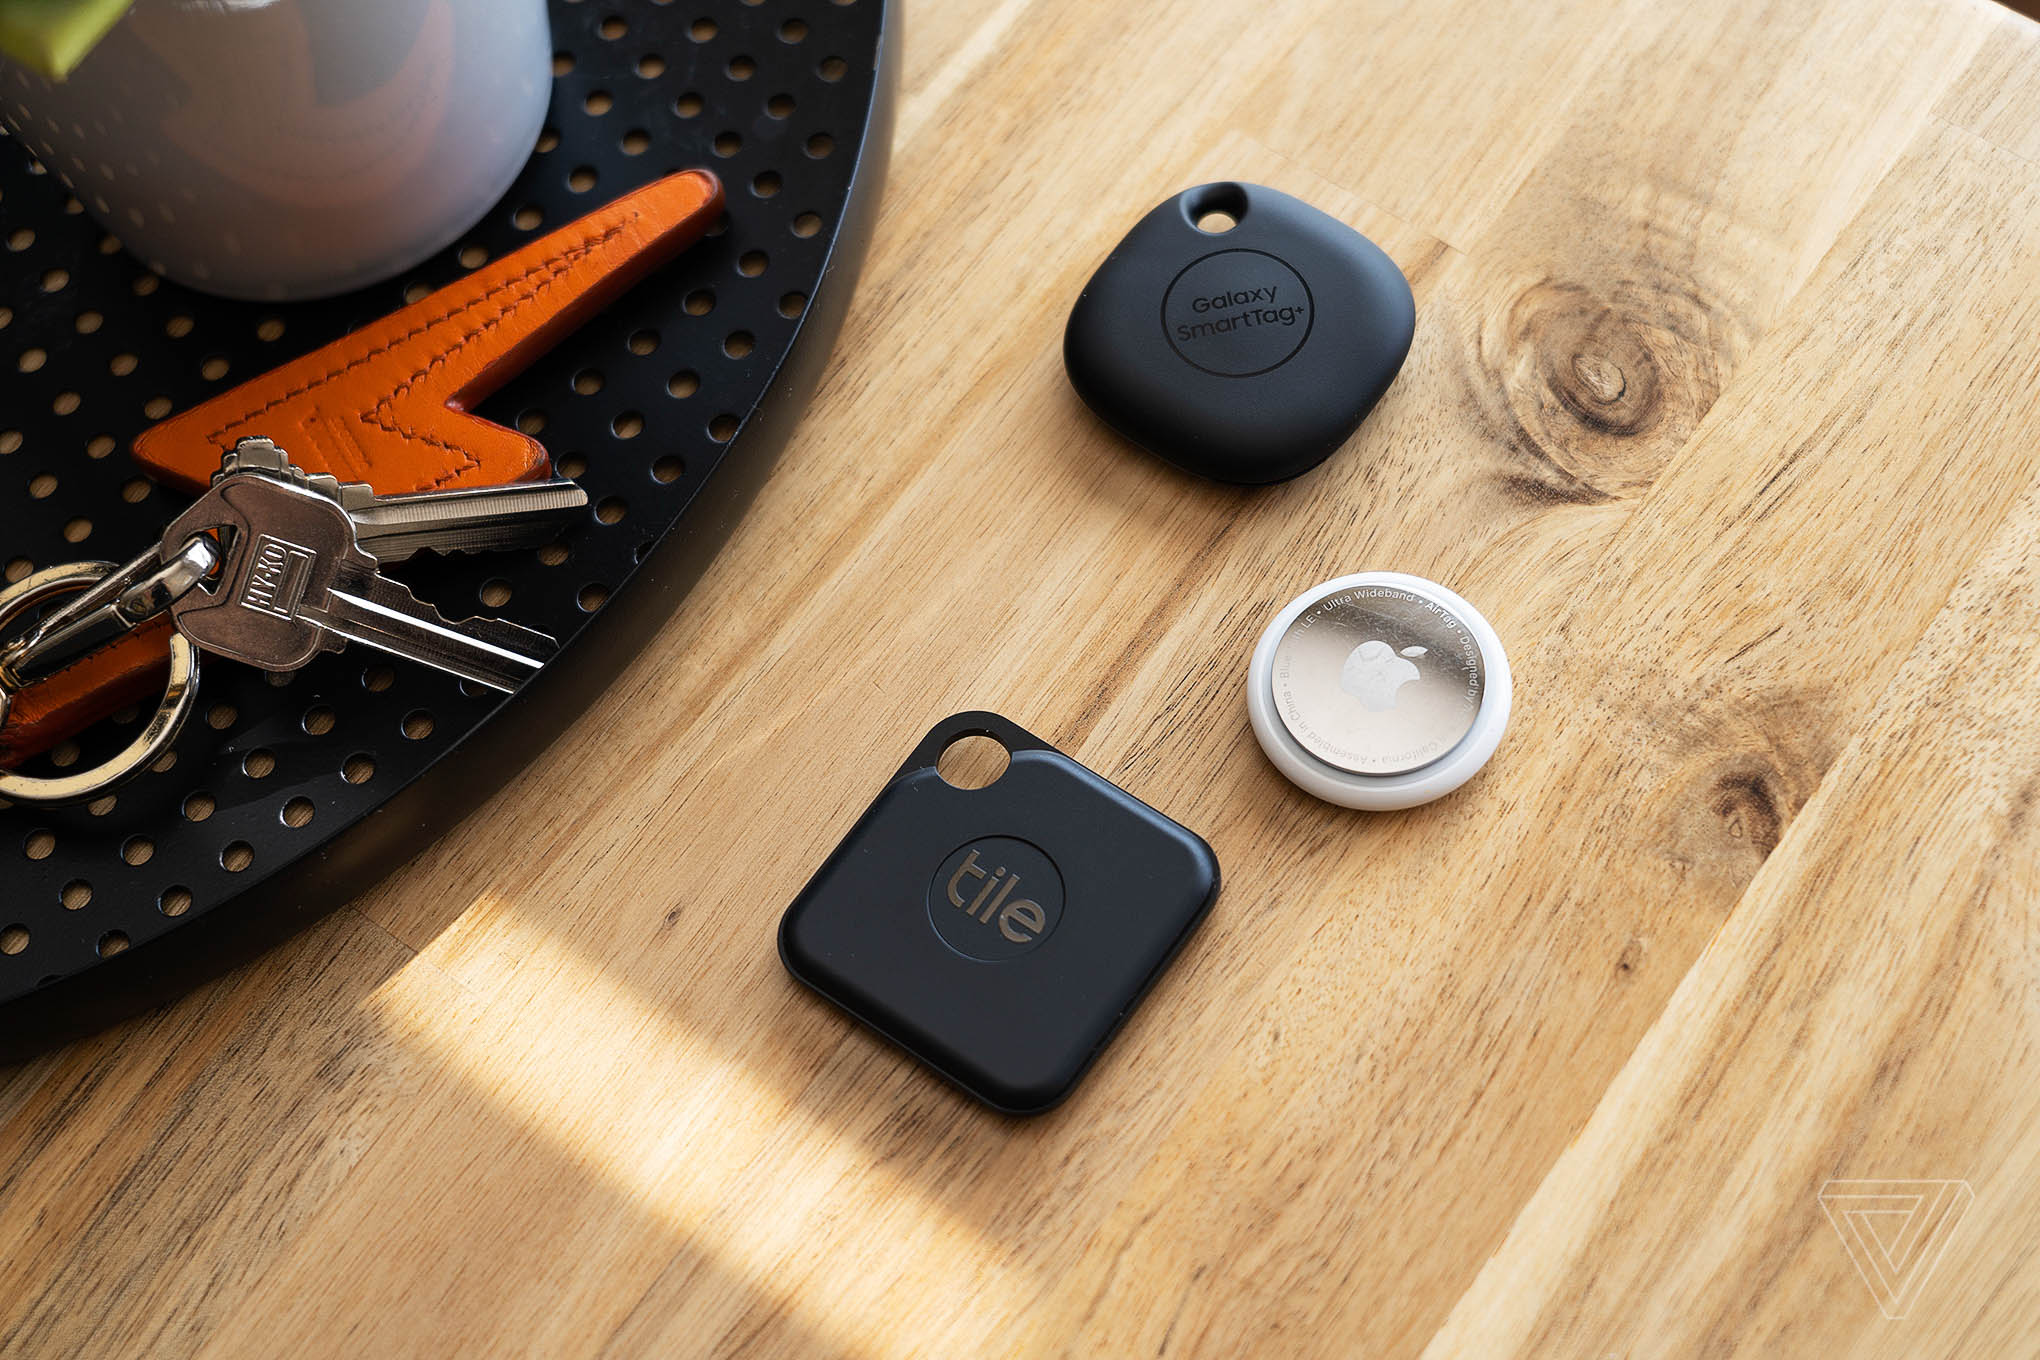 Apple, Tile, and Samsung all offer smart Bluetooth trackers.